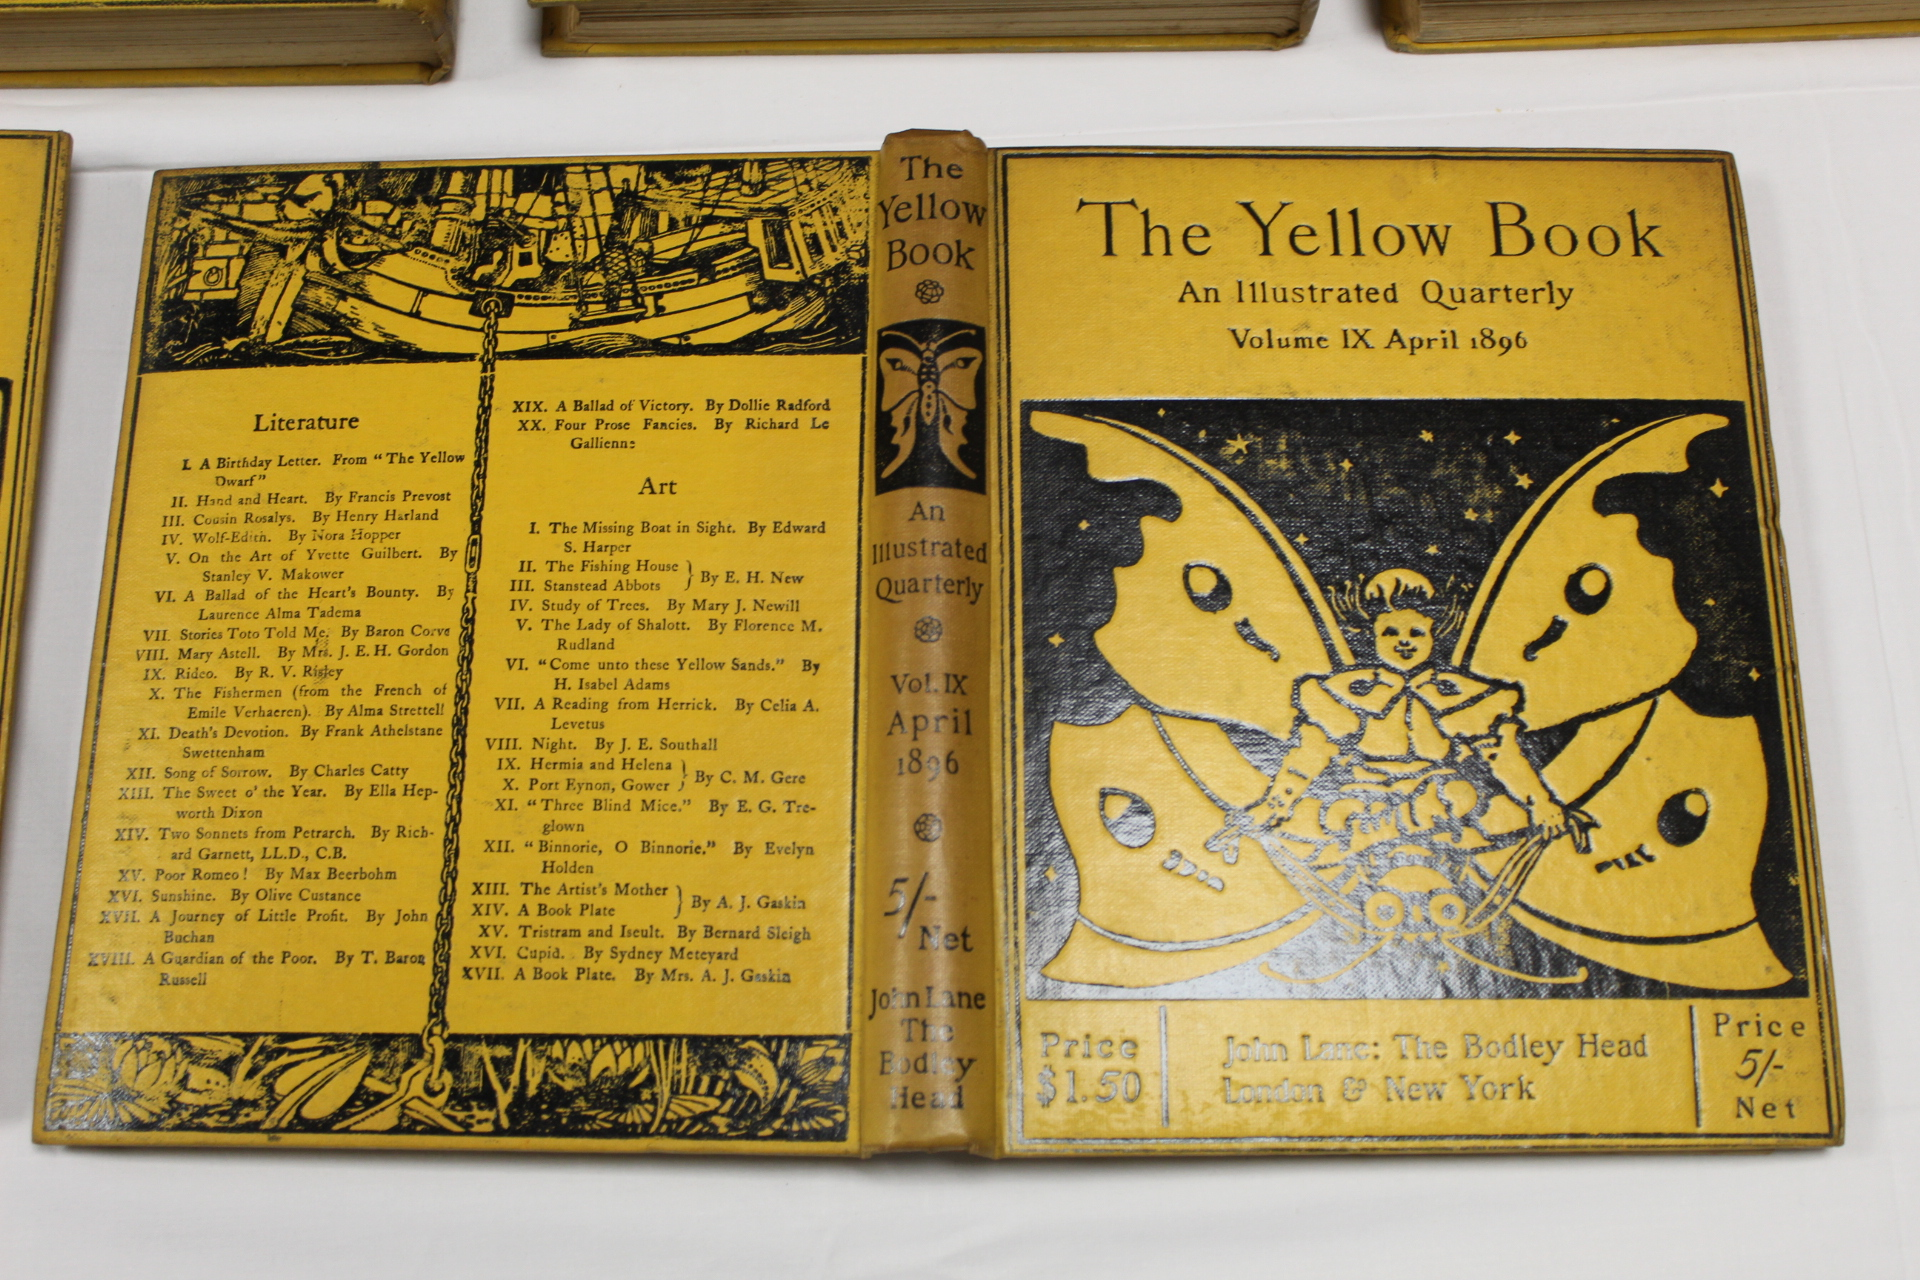 THE YELLOW BOOK.An Illustrated Quarterly. A set of 13 vols., many fine illus. Small quarto. - Image 44 of 45